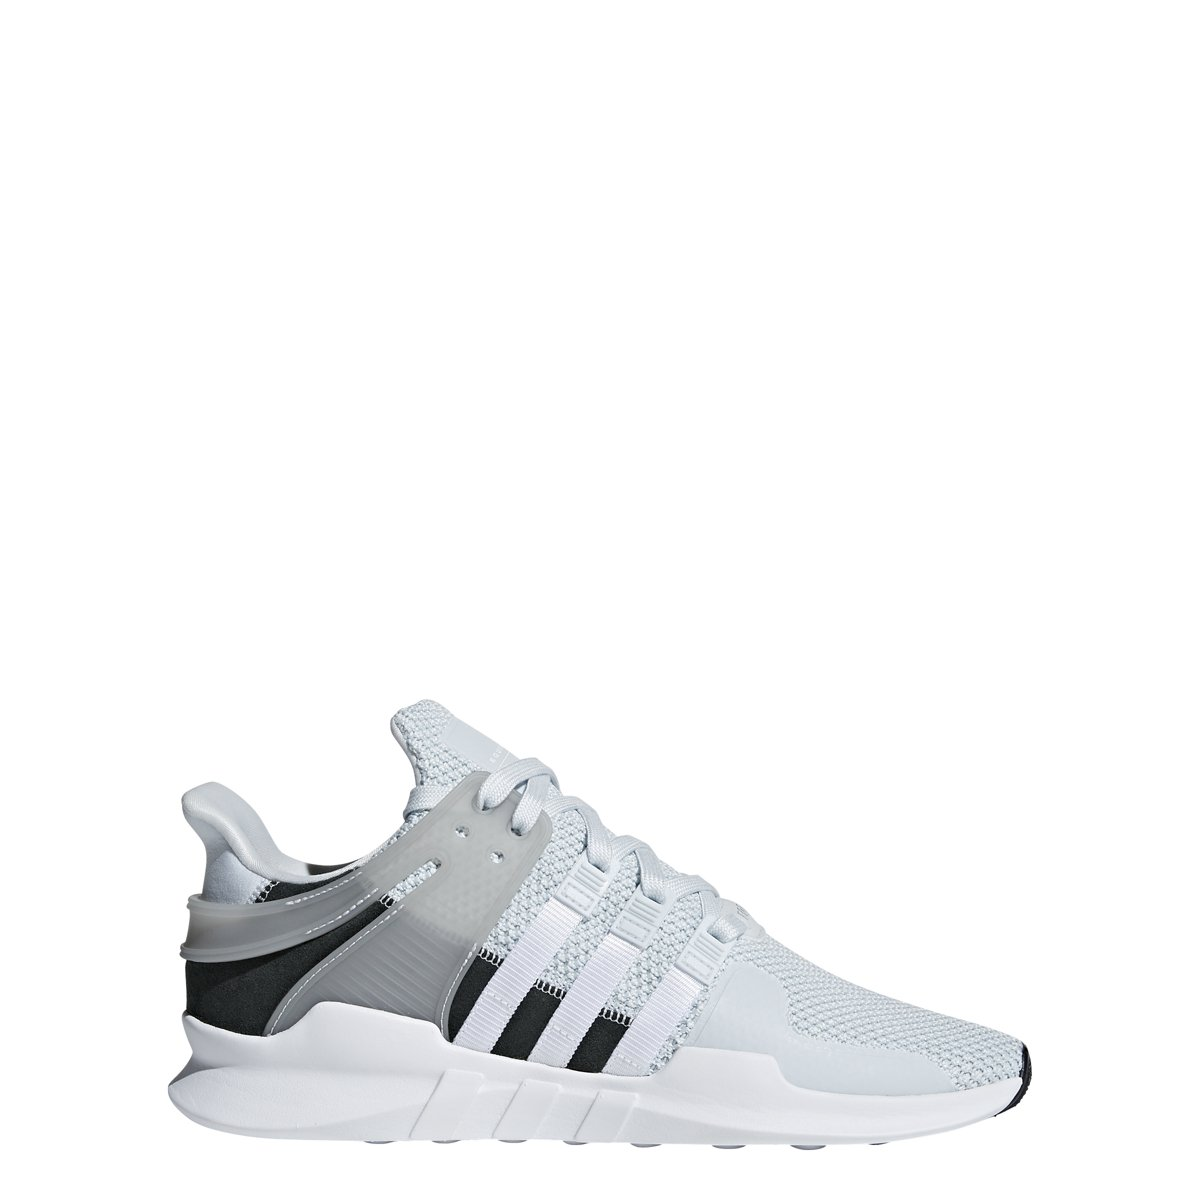 ef57394cfb7e Galleon - Adidas Men s EQT Support Adv Fashion Sneaker (13 M US ...